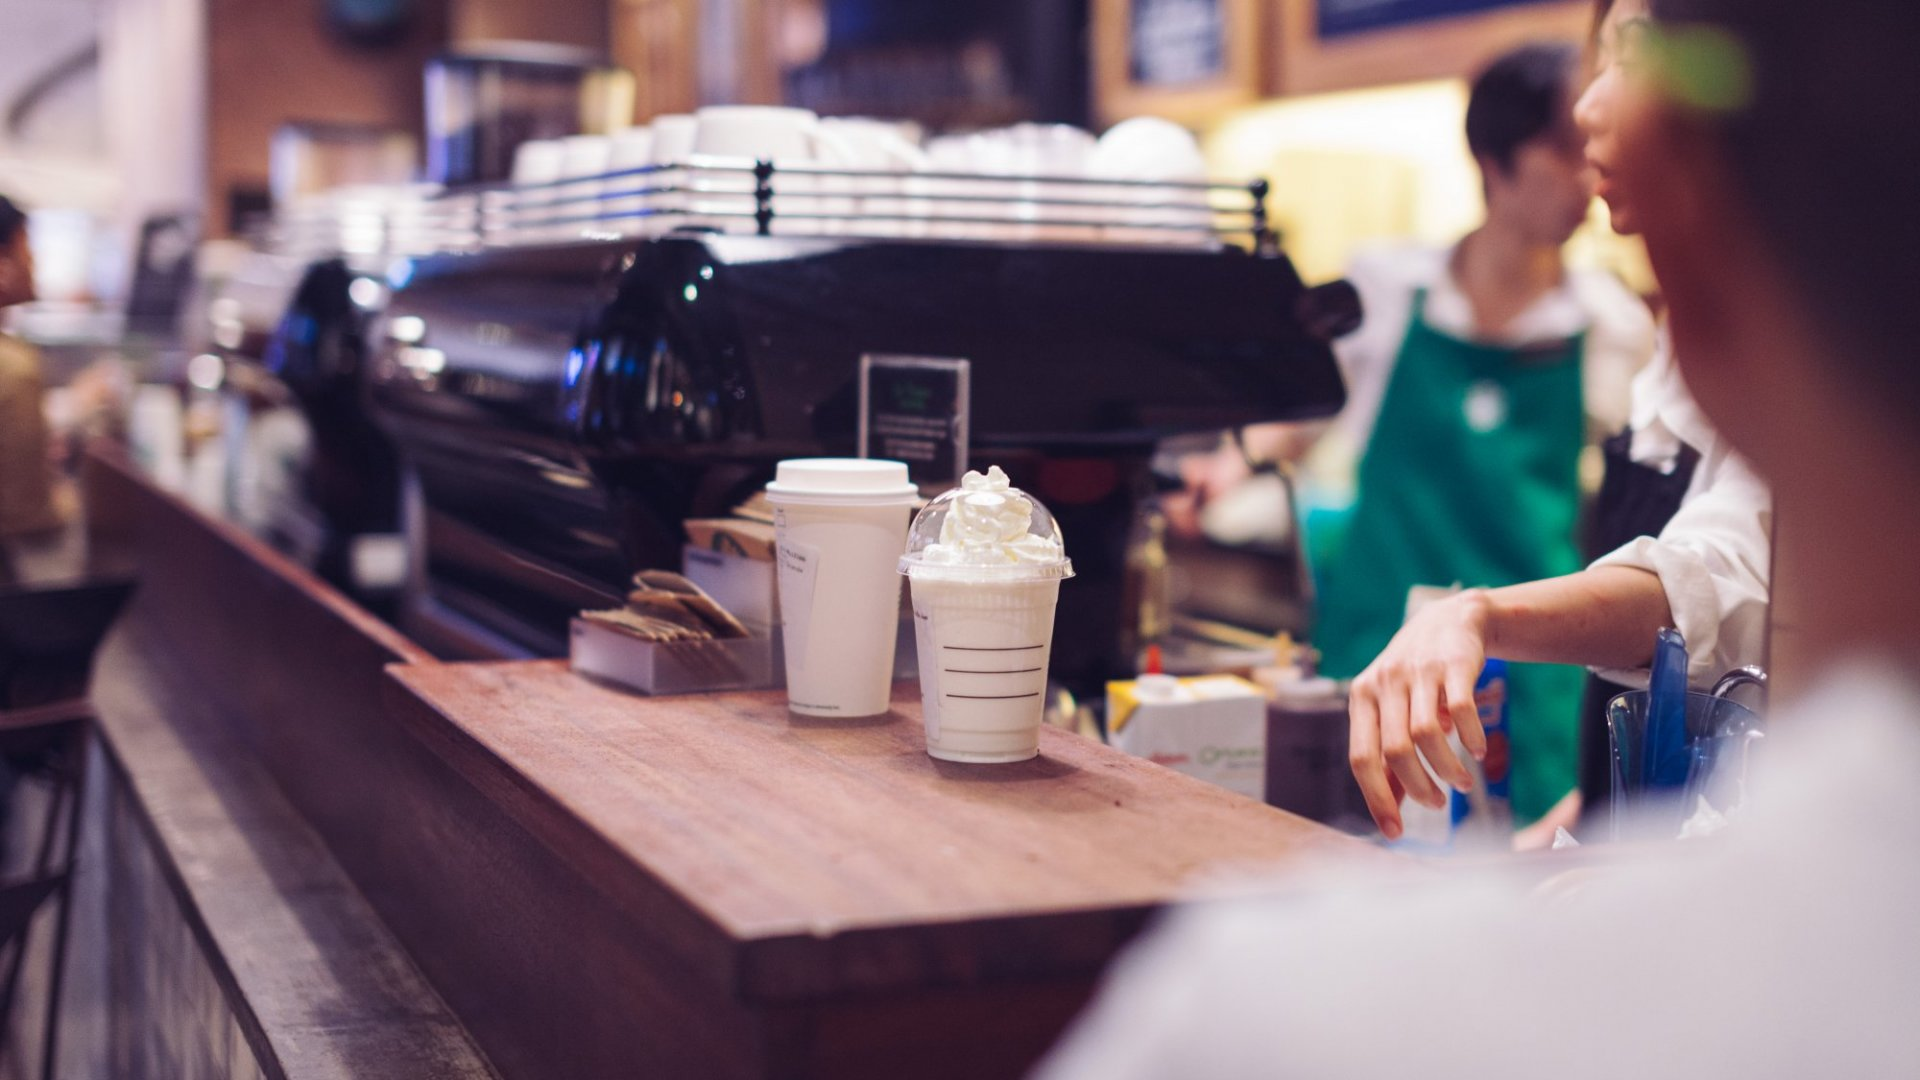 3 Things You Can Learn From Starbucks About Mobile App Marketing